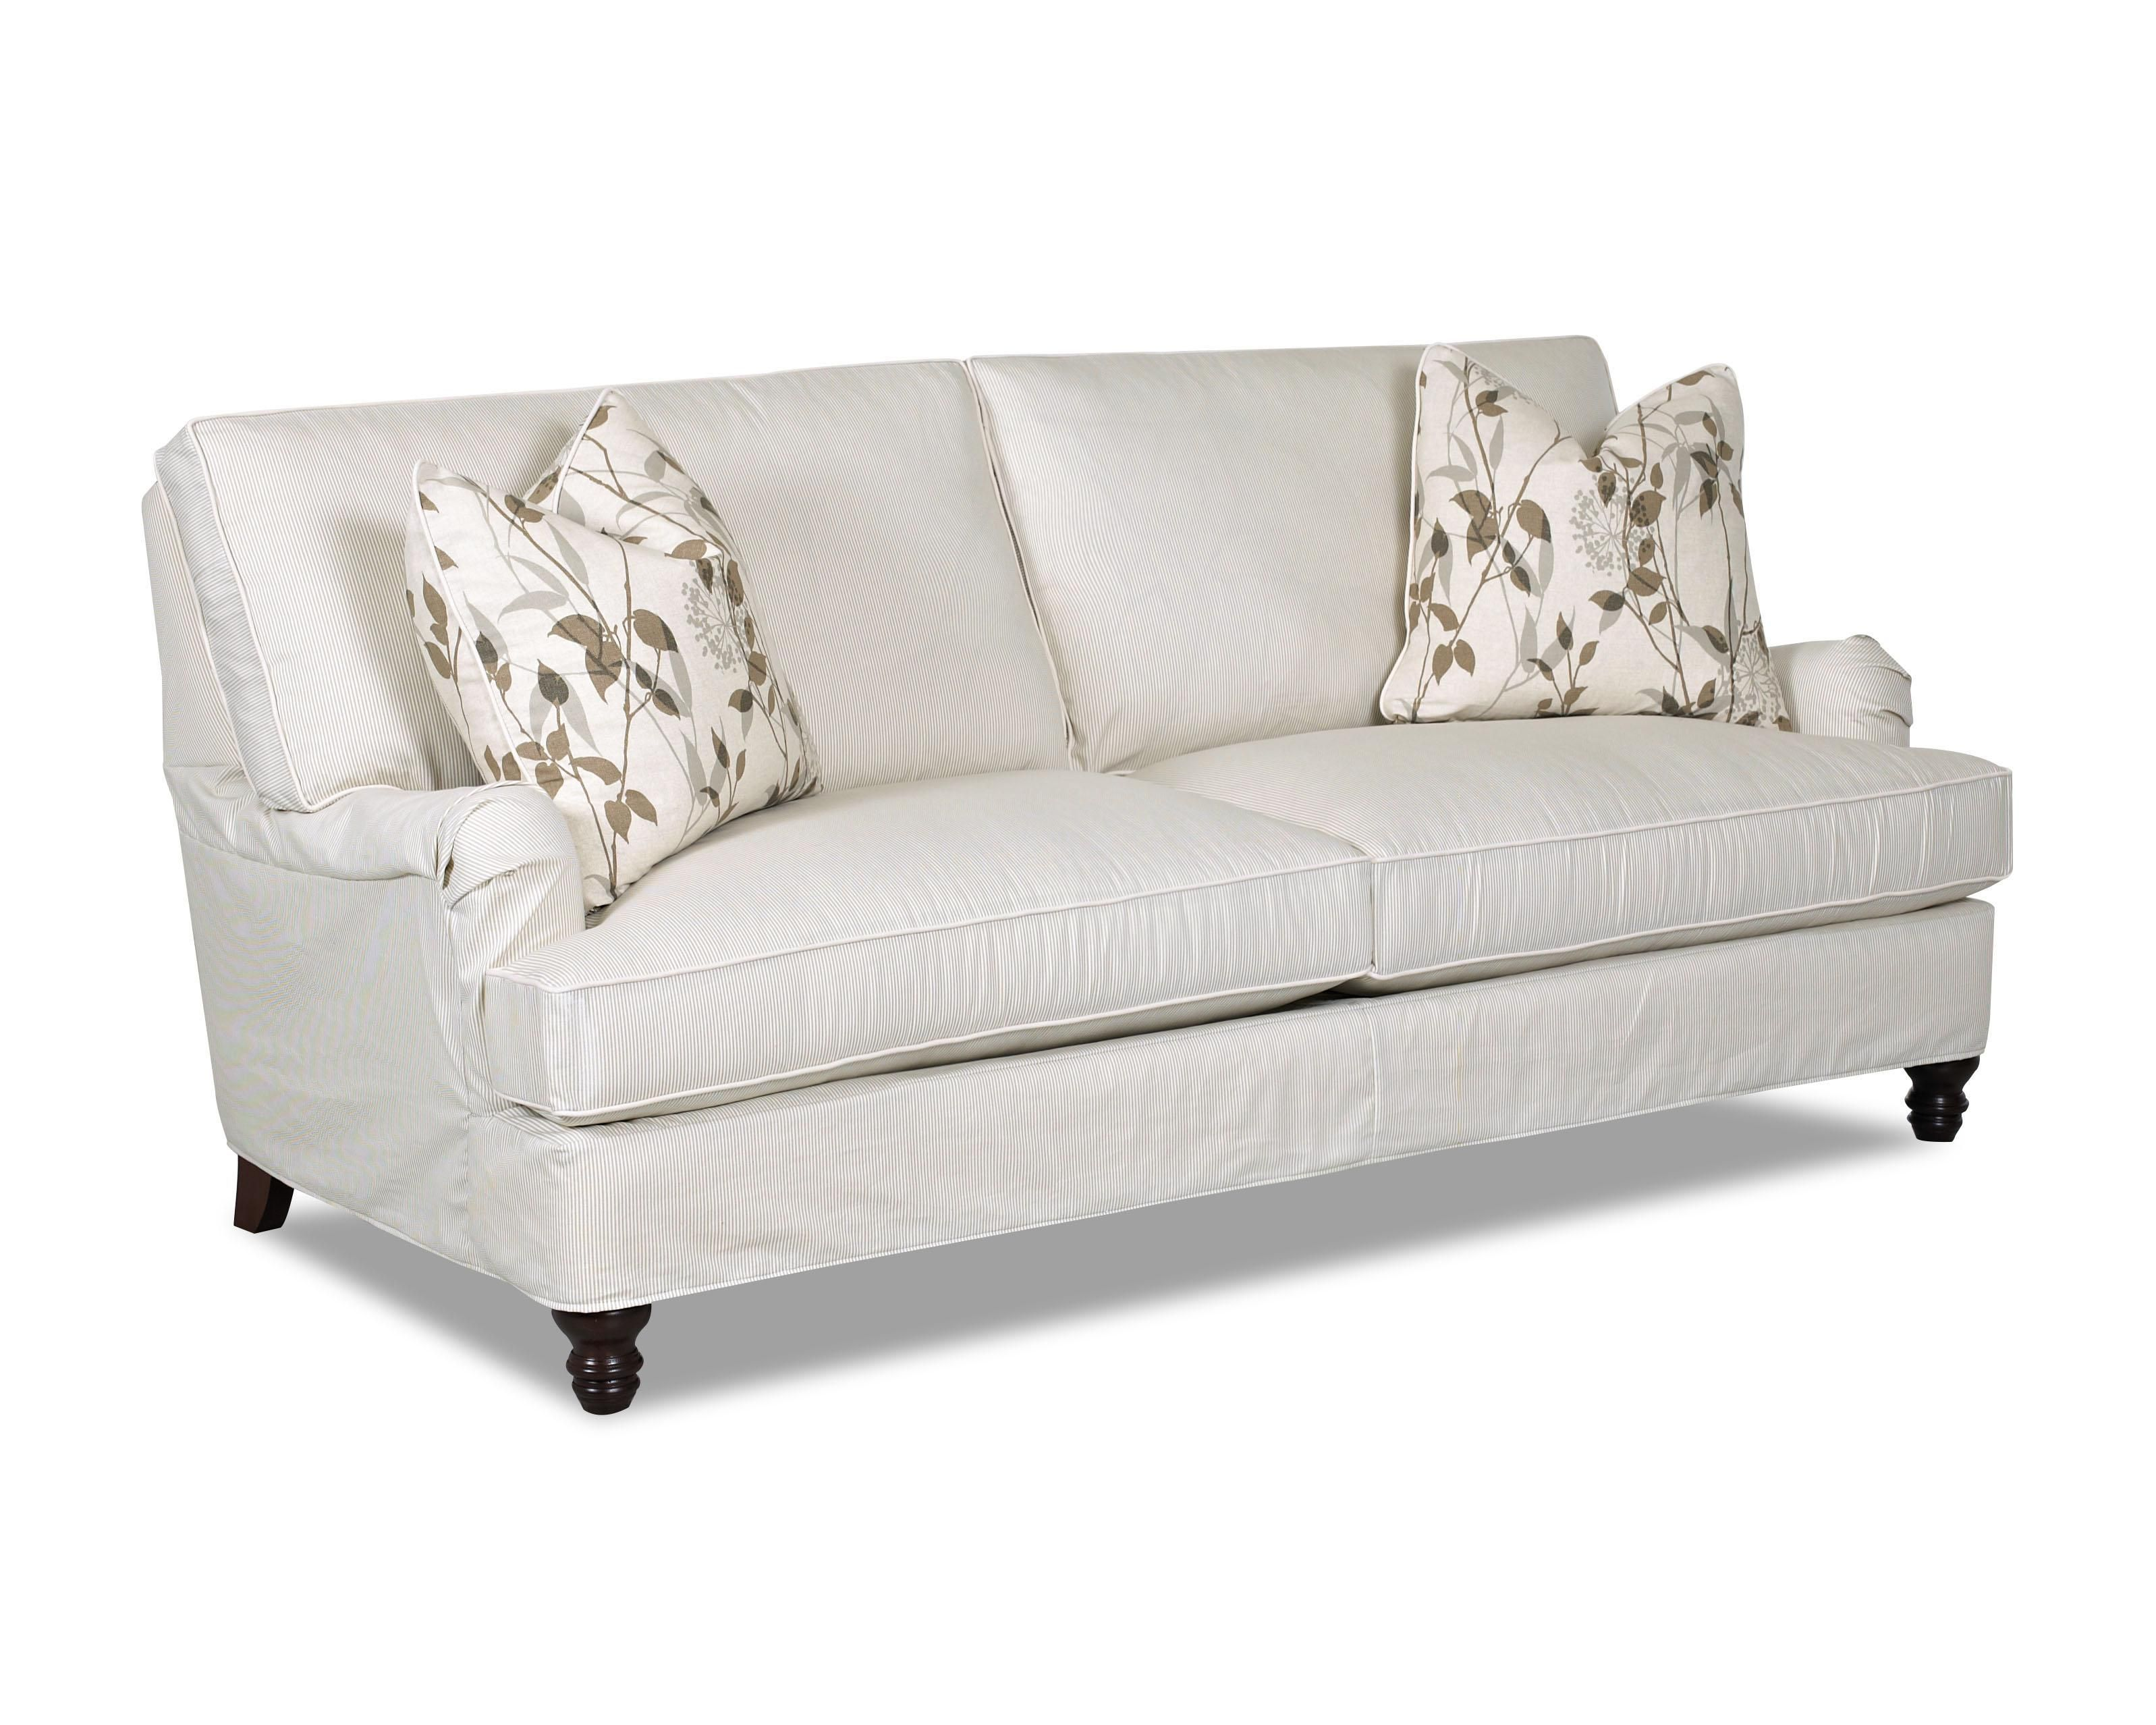 Awesome Charles Of London Sofa Fantastic 69 For Your Living Room